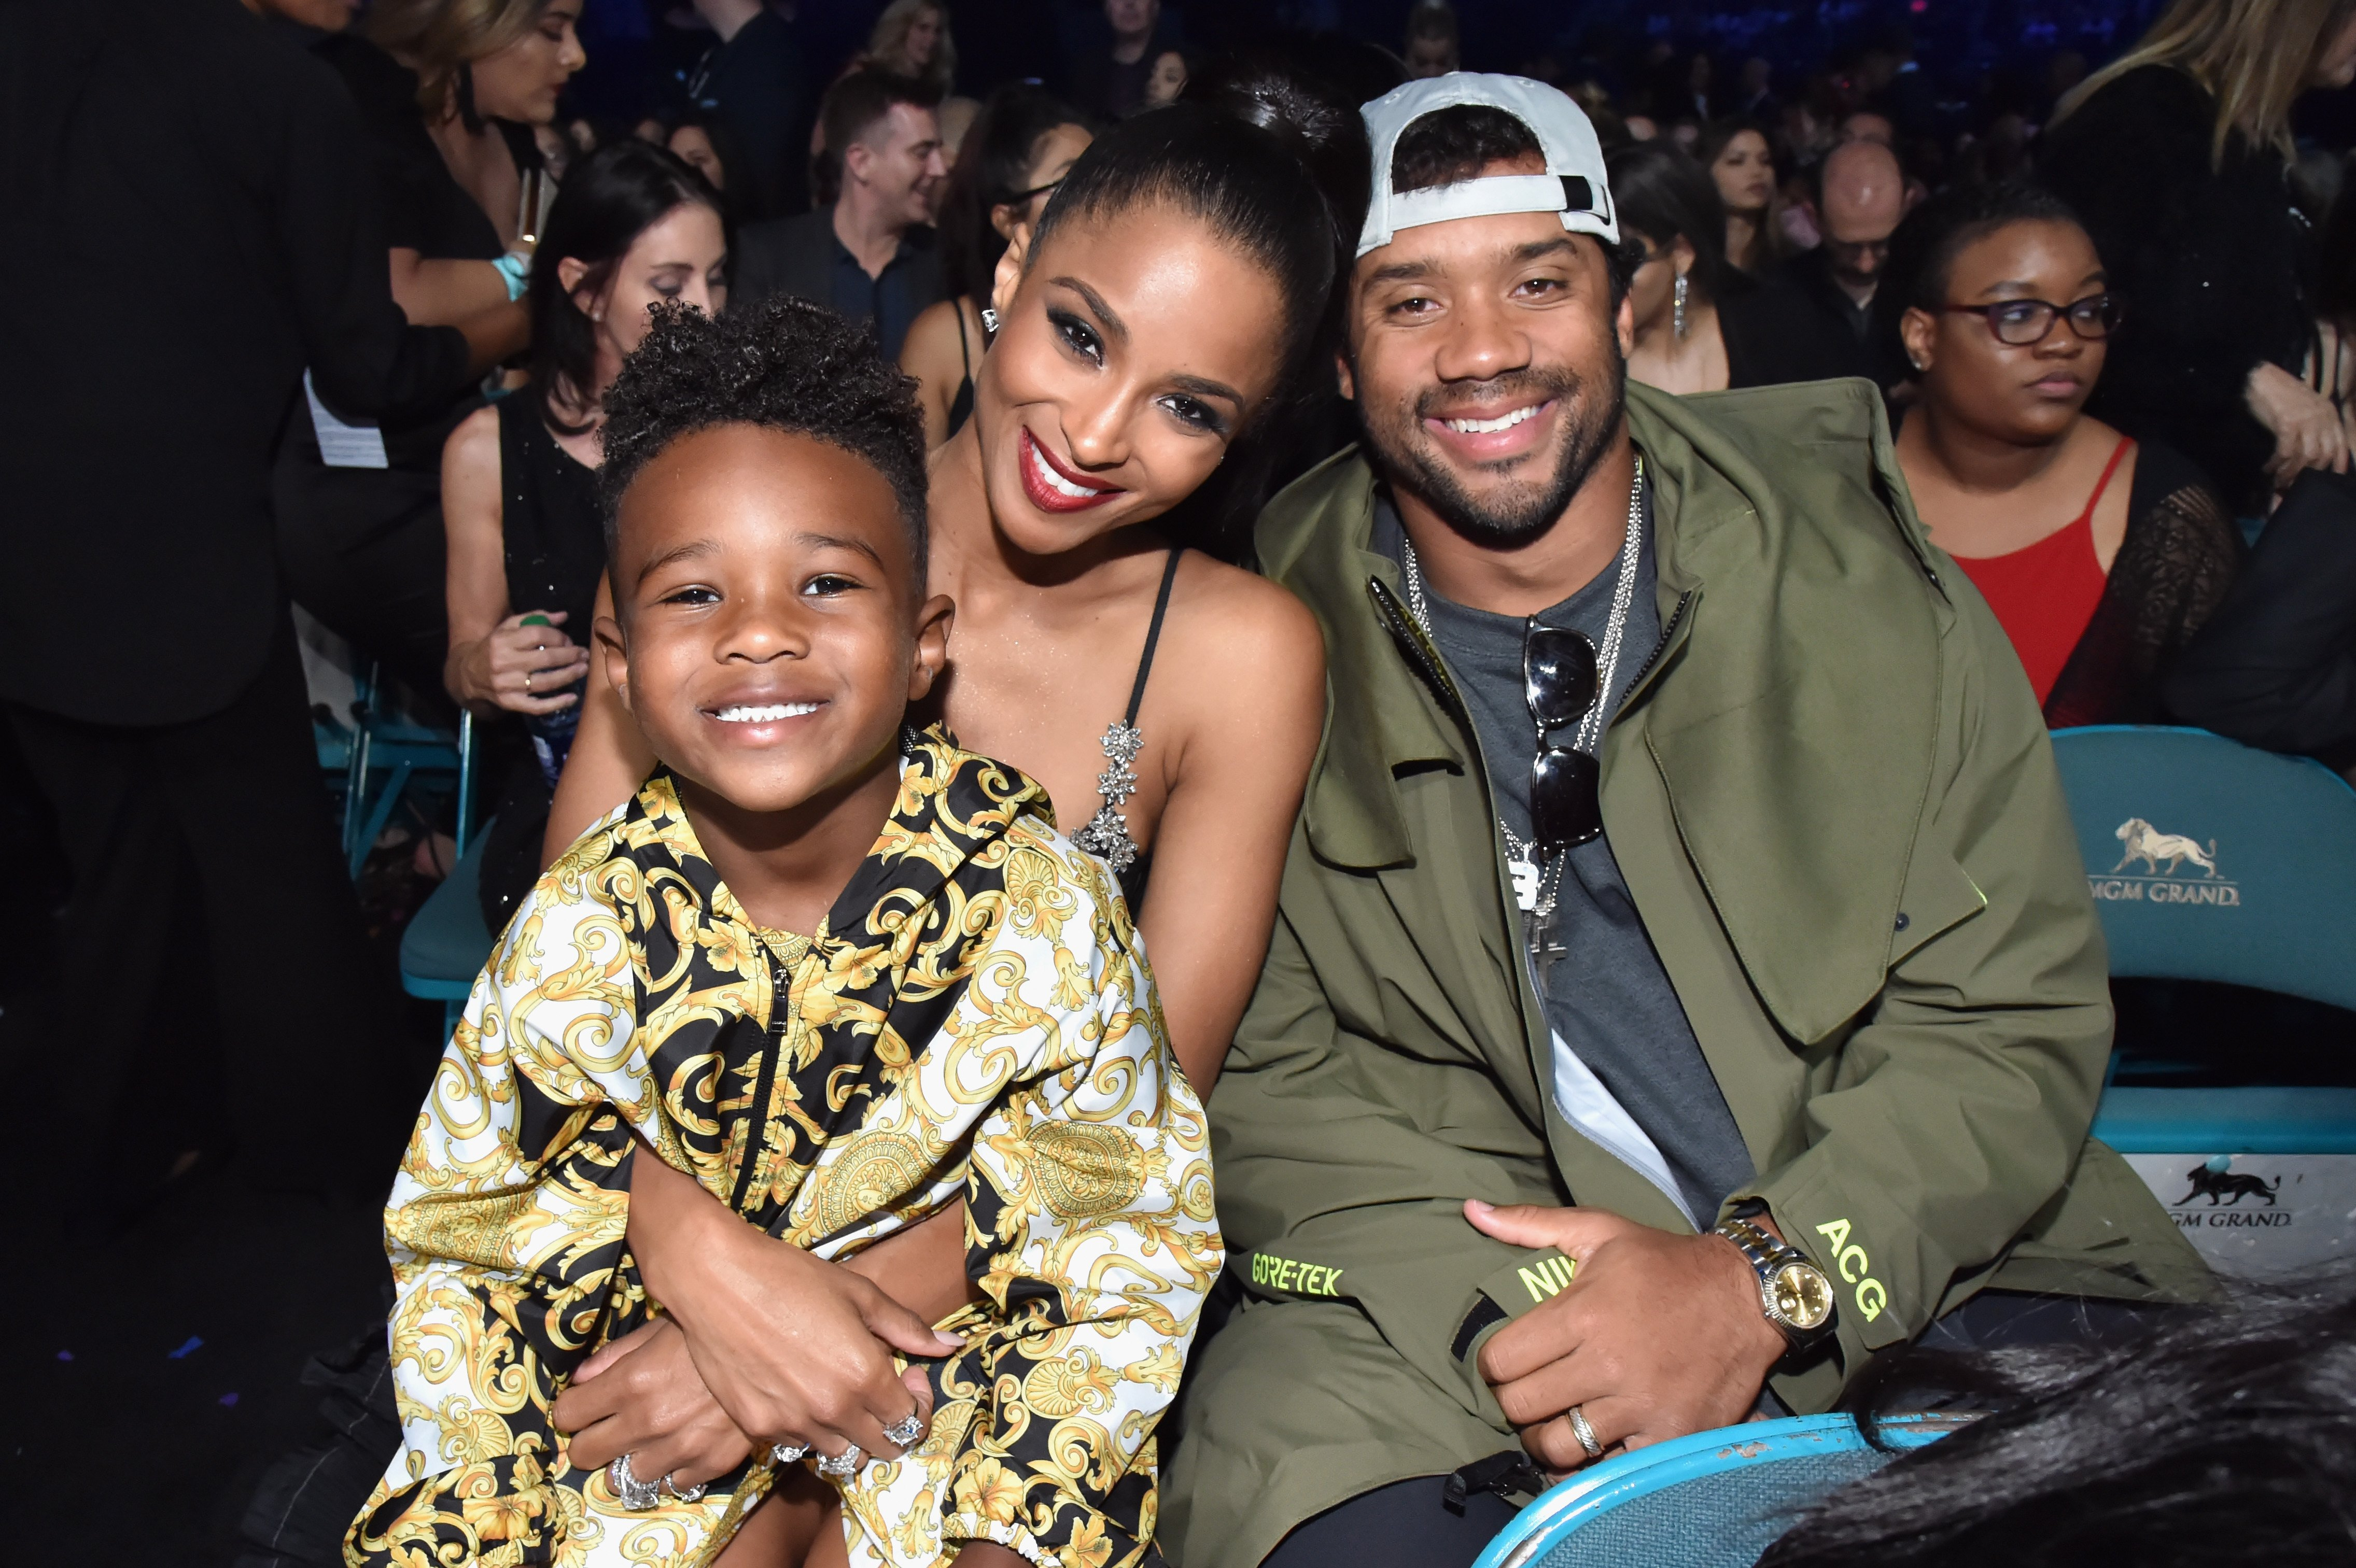 Future Zahir Wilburn, Ciara and Russell Wilson pictured at the 2019 Billboard Music Awards on May 1, 2019 in Las Vegas, Nevada.   Source: Getty Images